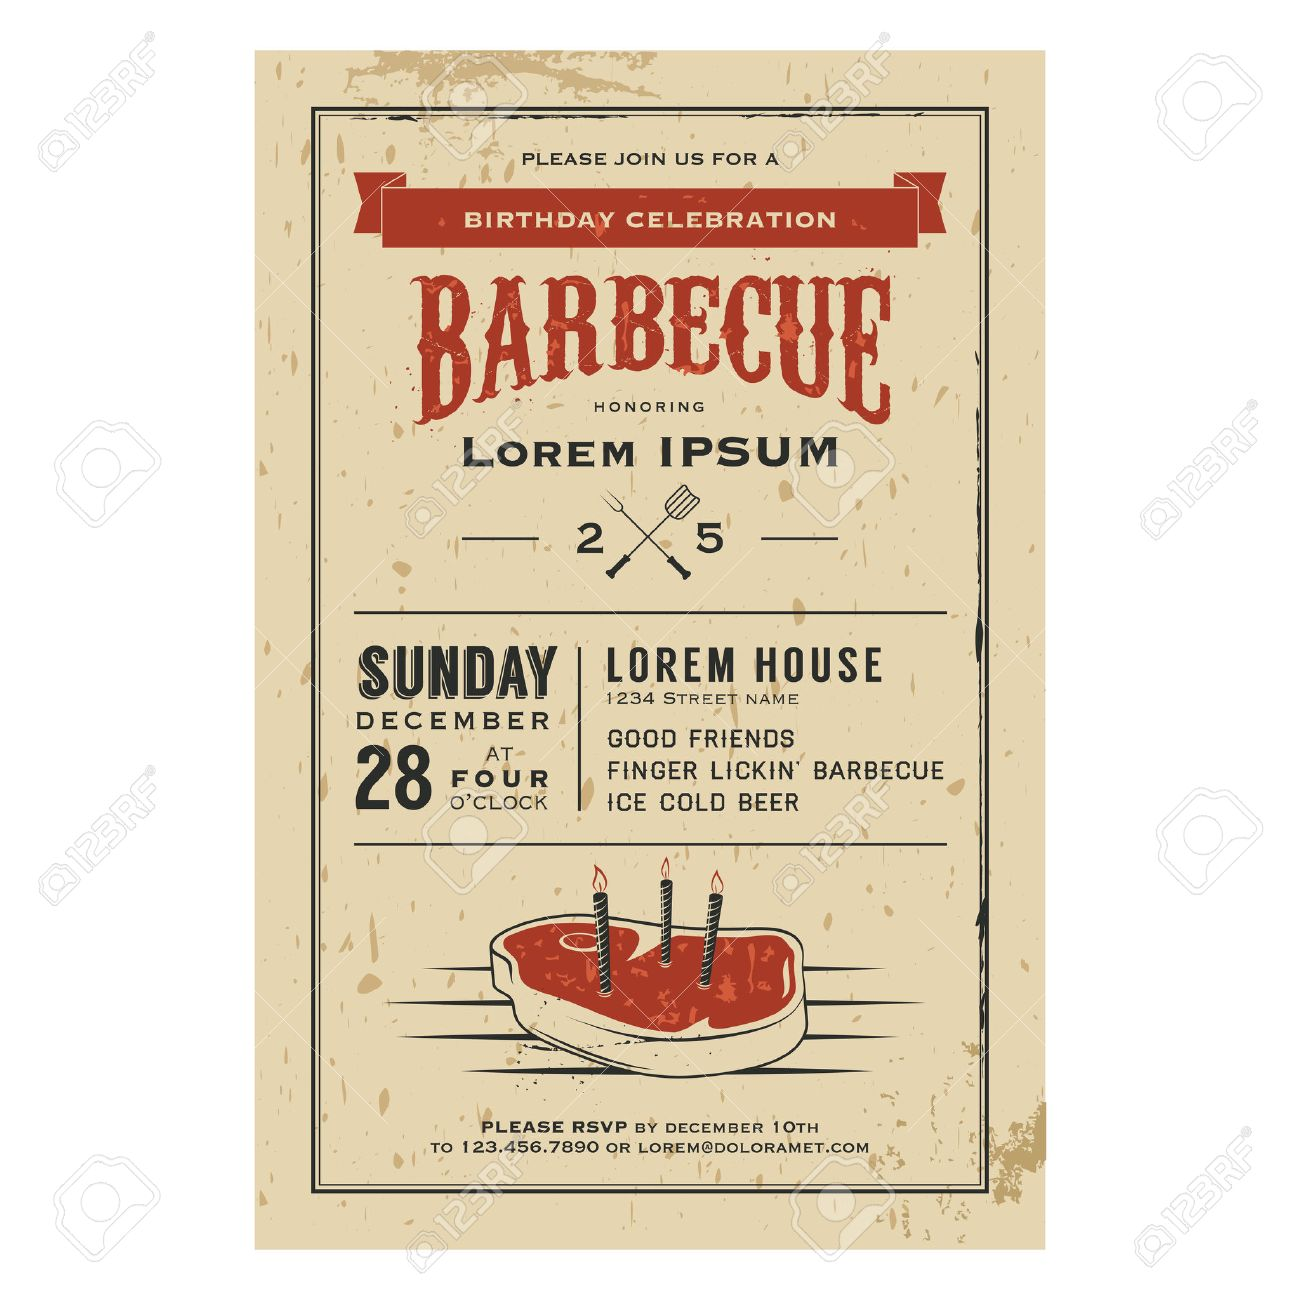 Bbq Party Stock Photos & Pictures. Royalty Free Bbq Party Images ...